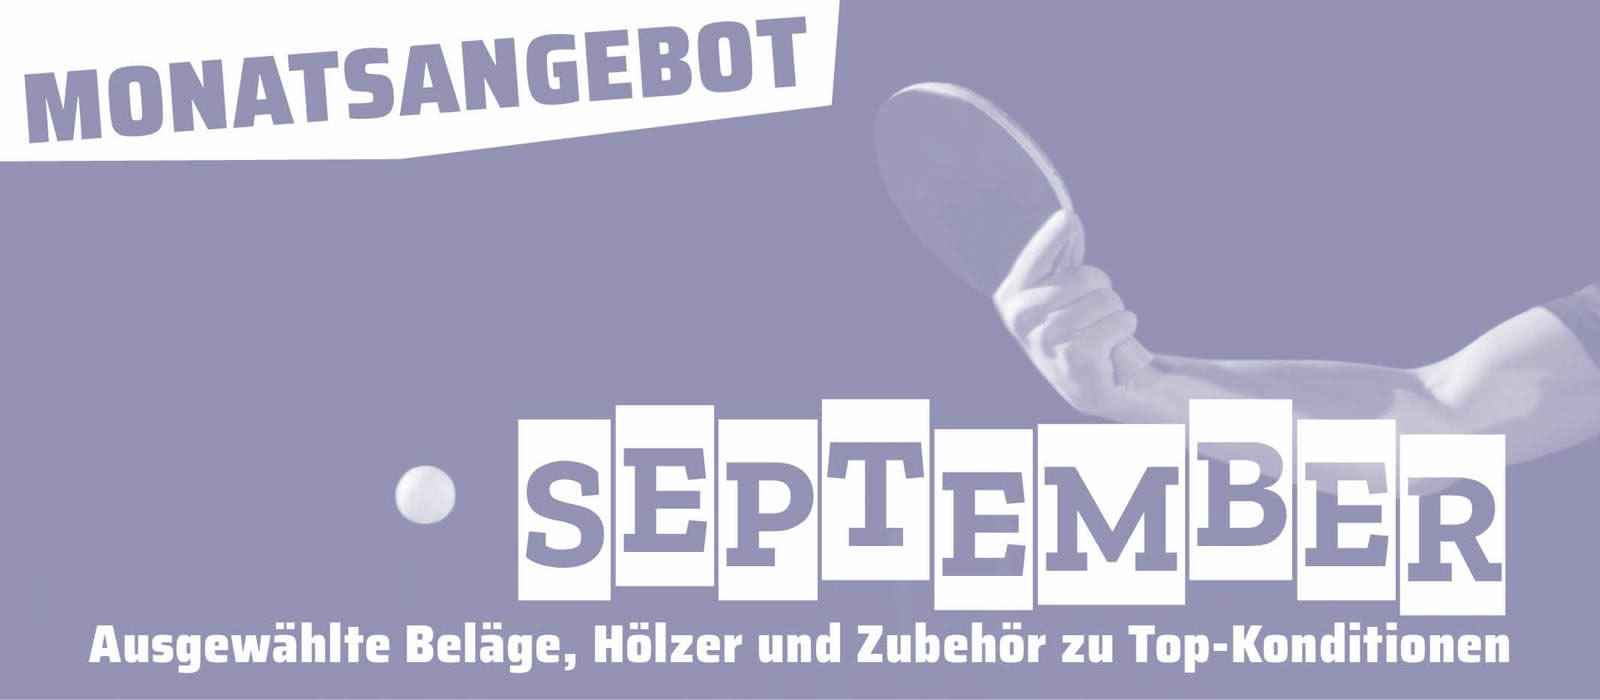 Monatsangebot September 2020